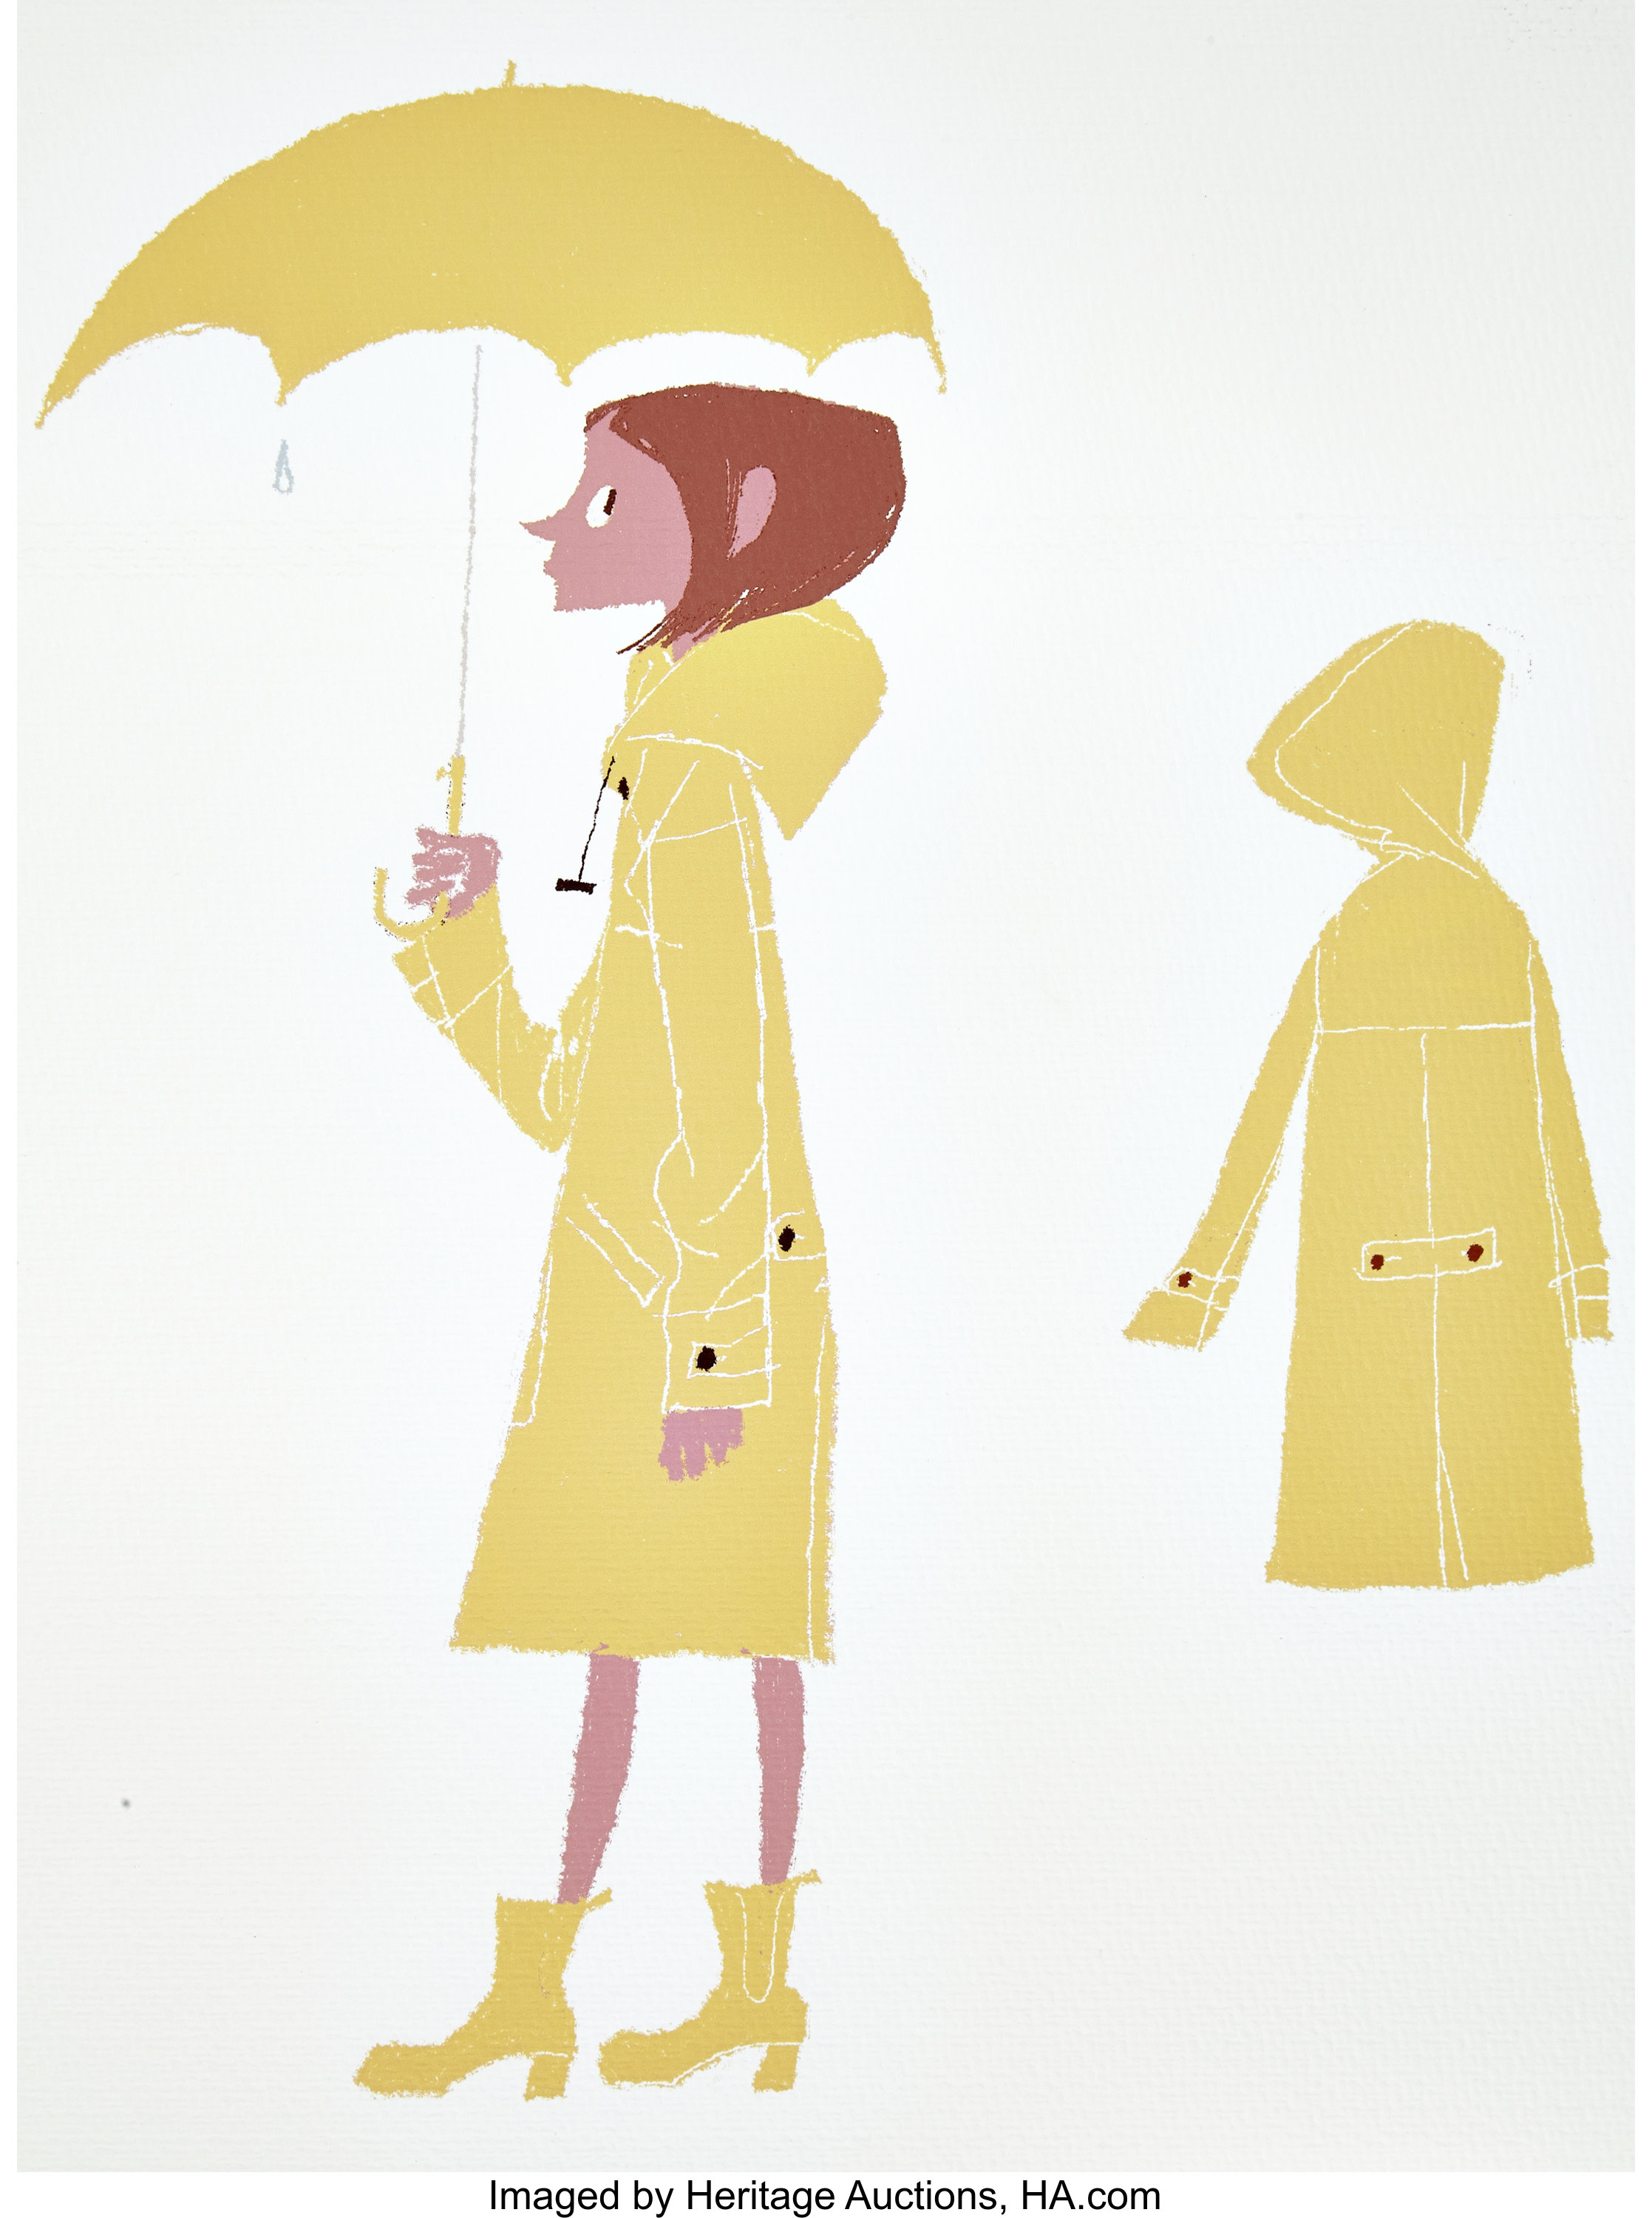 Coraline Coraline Rainy Day Outfit Lithograph By Tadahiro Uesugi Lot 94017 Heritage Auctions